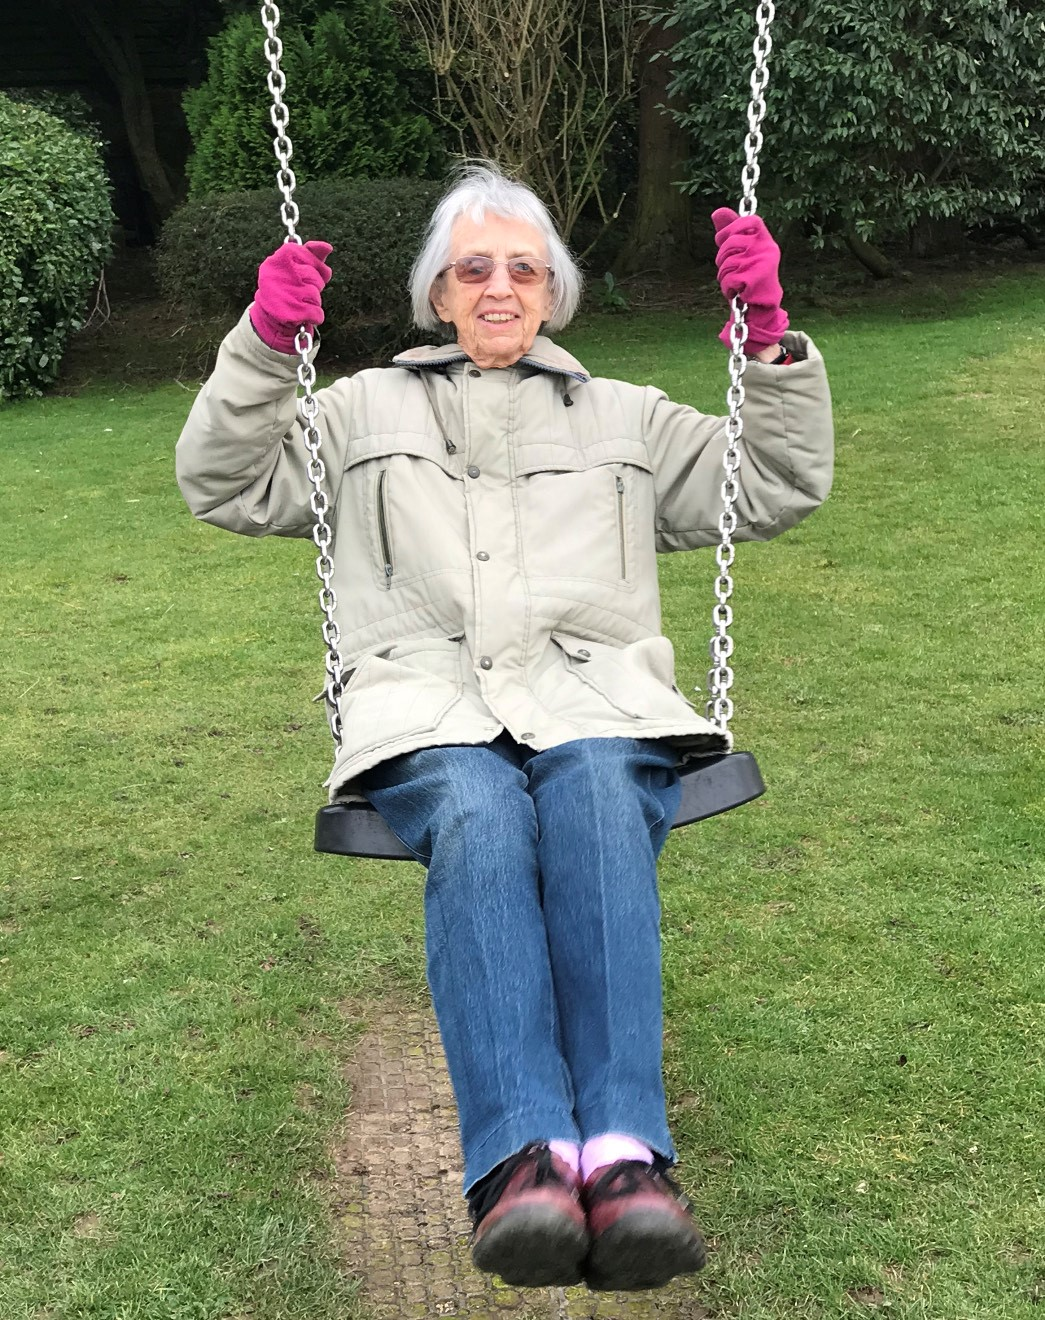 Alison's mum Janet on a swing on holiday